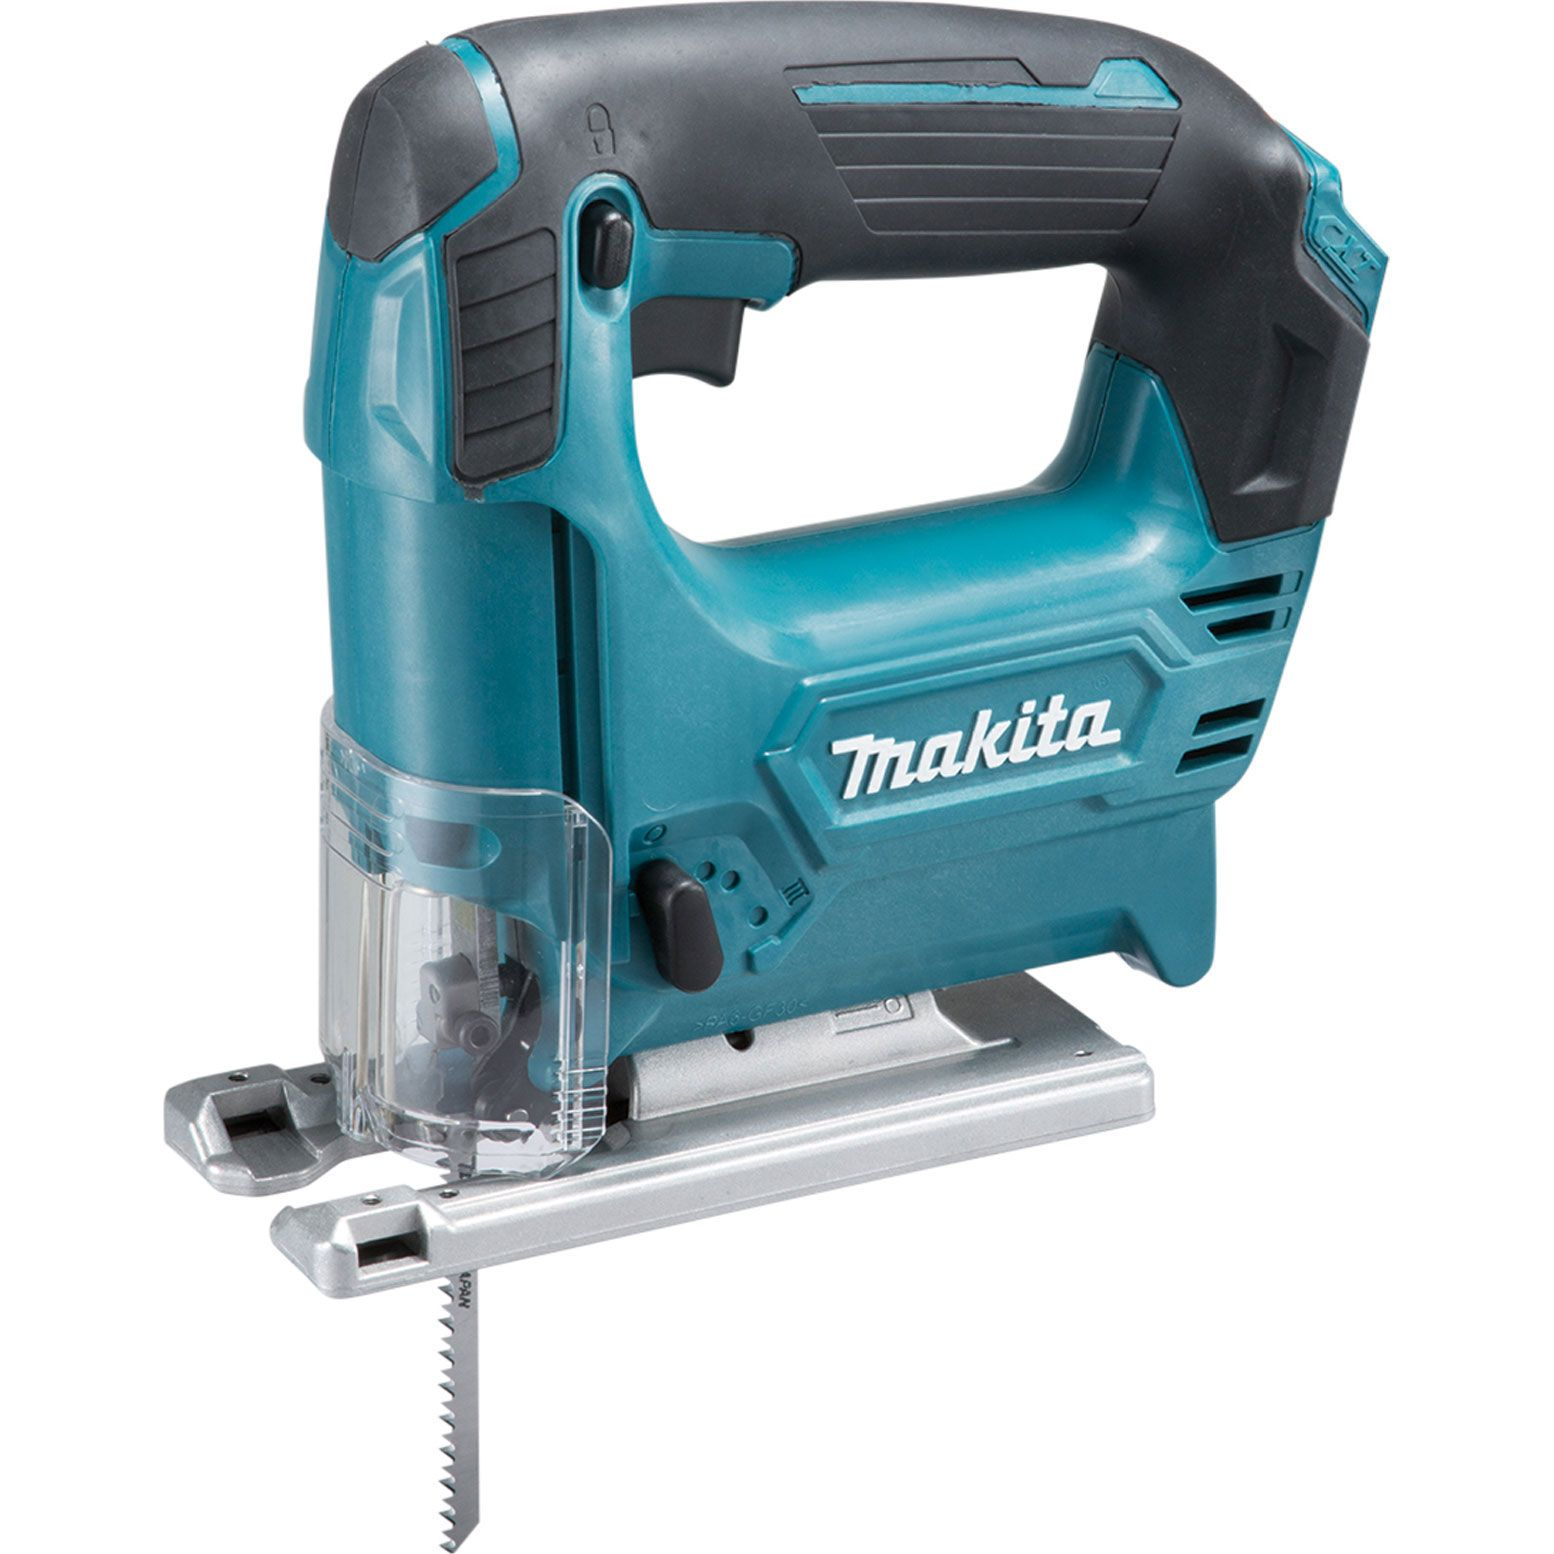 Buy A Makita Jv101 10 8v Cordless Cxt Jigsaw No Batteries No Charger No Case Online At Unbeatable Prices By Uk S Top Saw Tool Makita Best Cordless Circular Saw